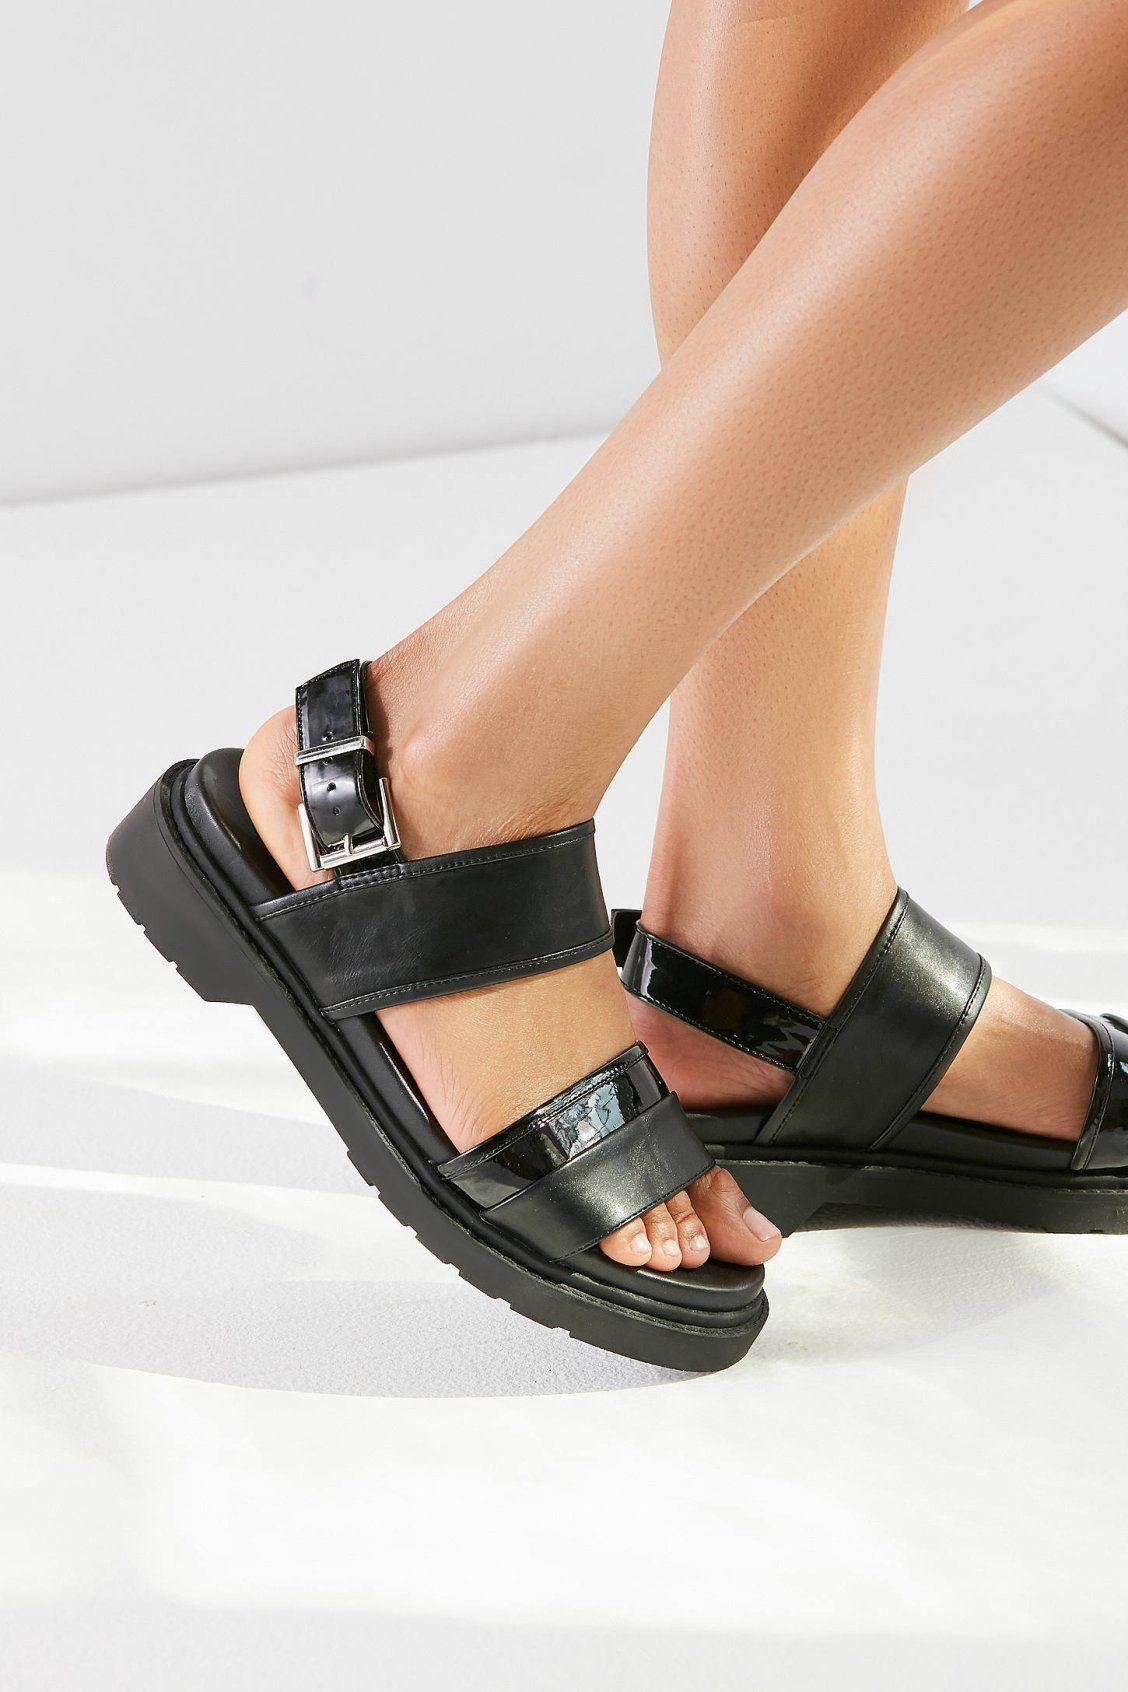 6a6d1be3b291 Sherry Lug Sole Sandal